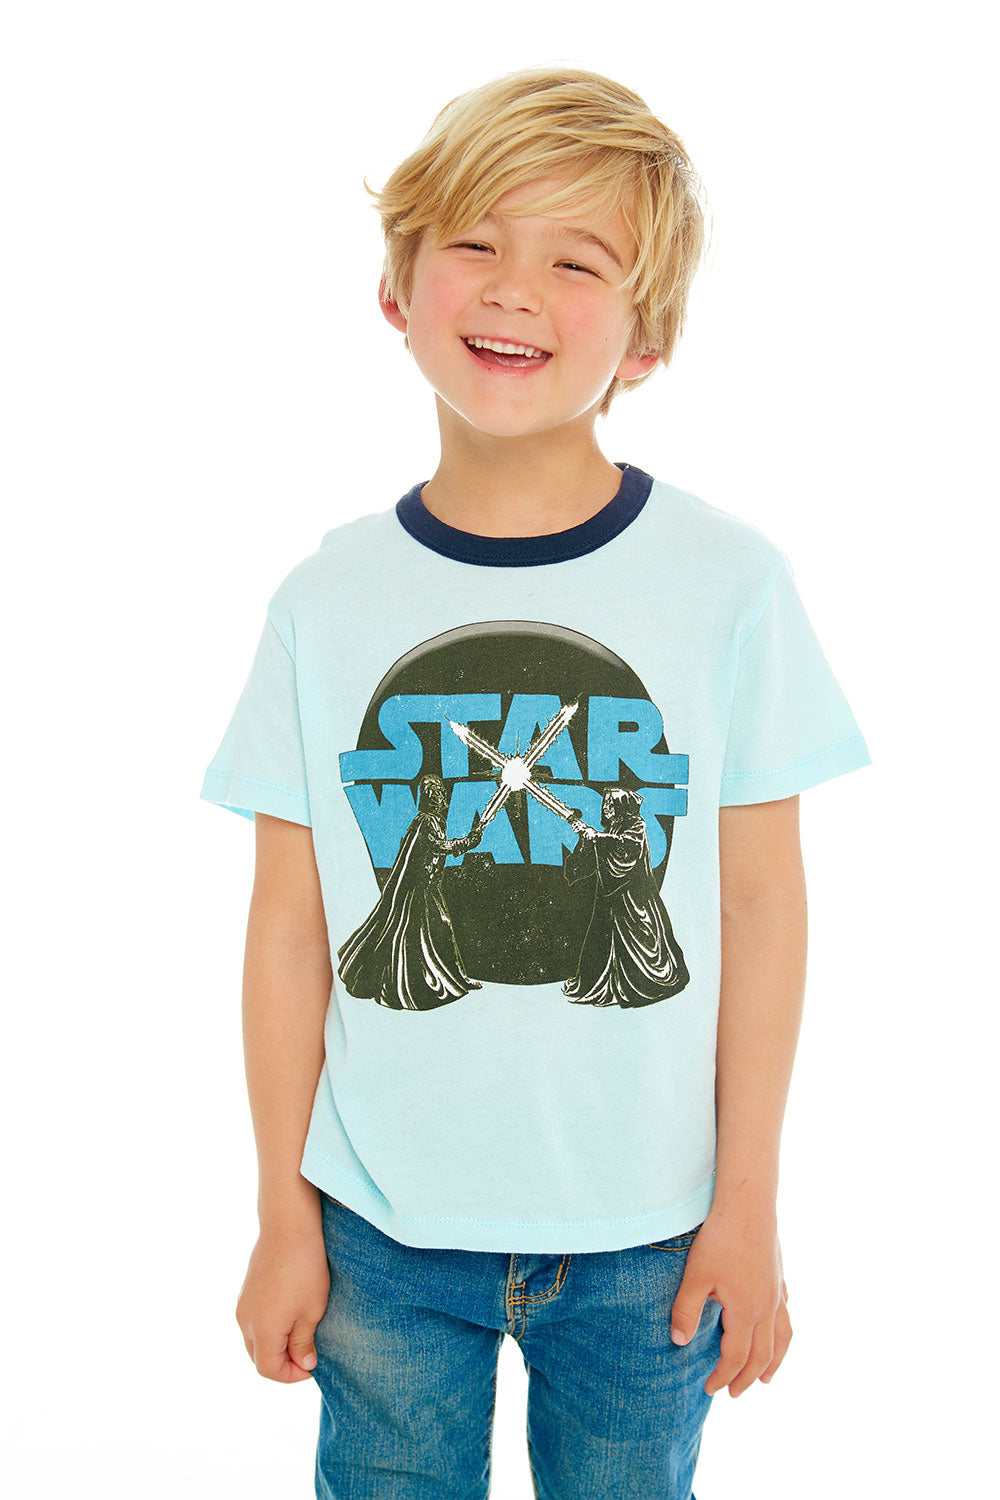 Star Wars - Star Wars Battle, BOYS, chaserbrand.com,chaser clothing,chaser apparel,chaser los angeles